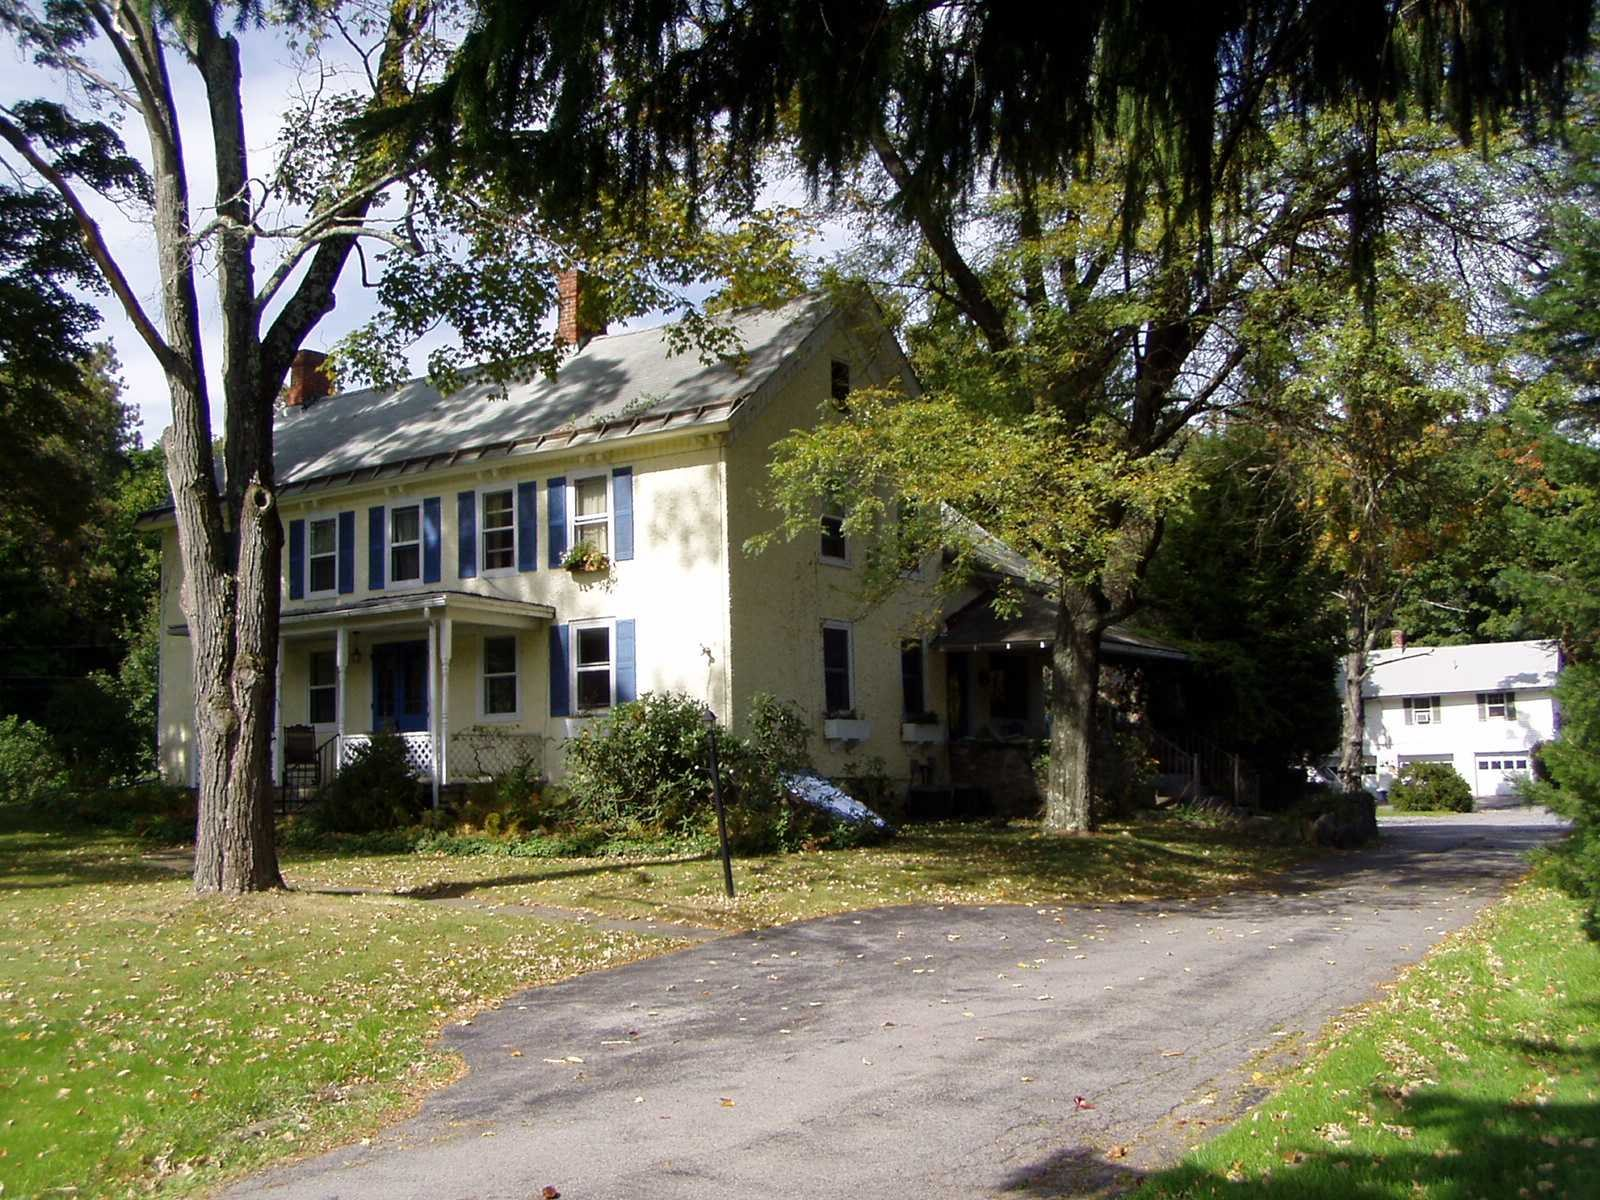 Business for Sale at 39 W DORSEY Lane 39 W DORSEY Lane Hyde Park, New York 12538 United States